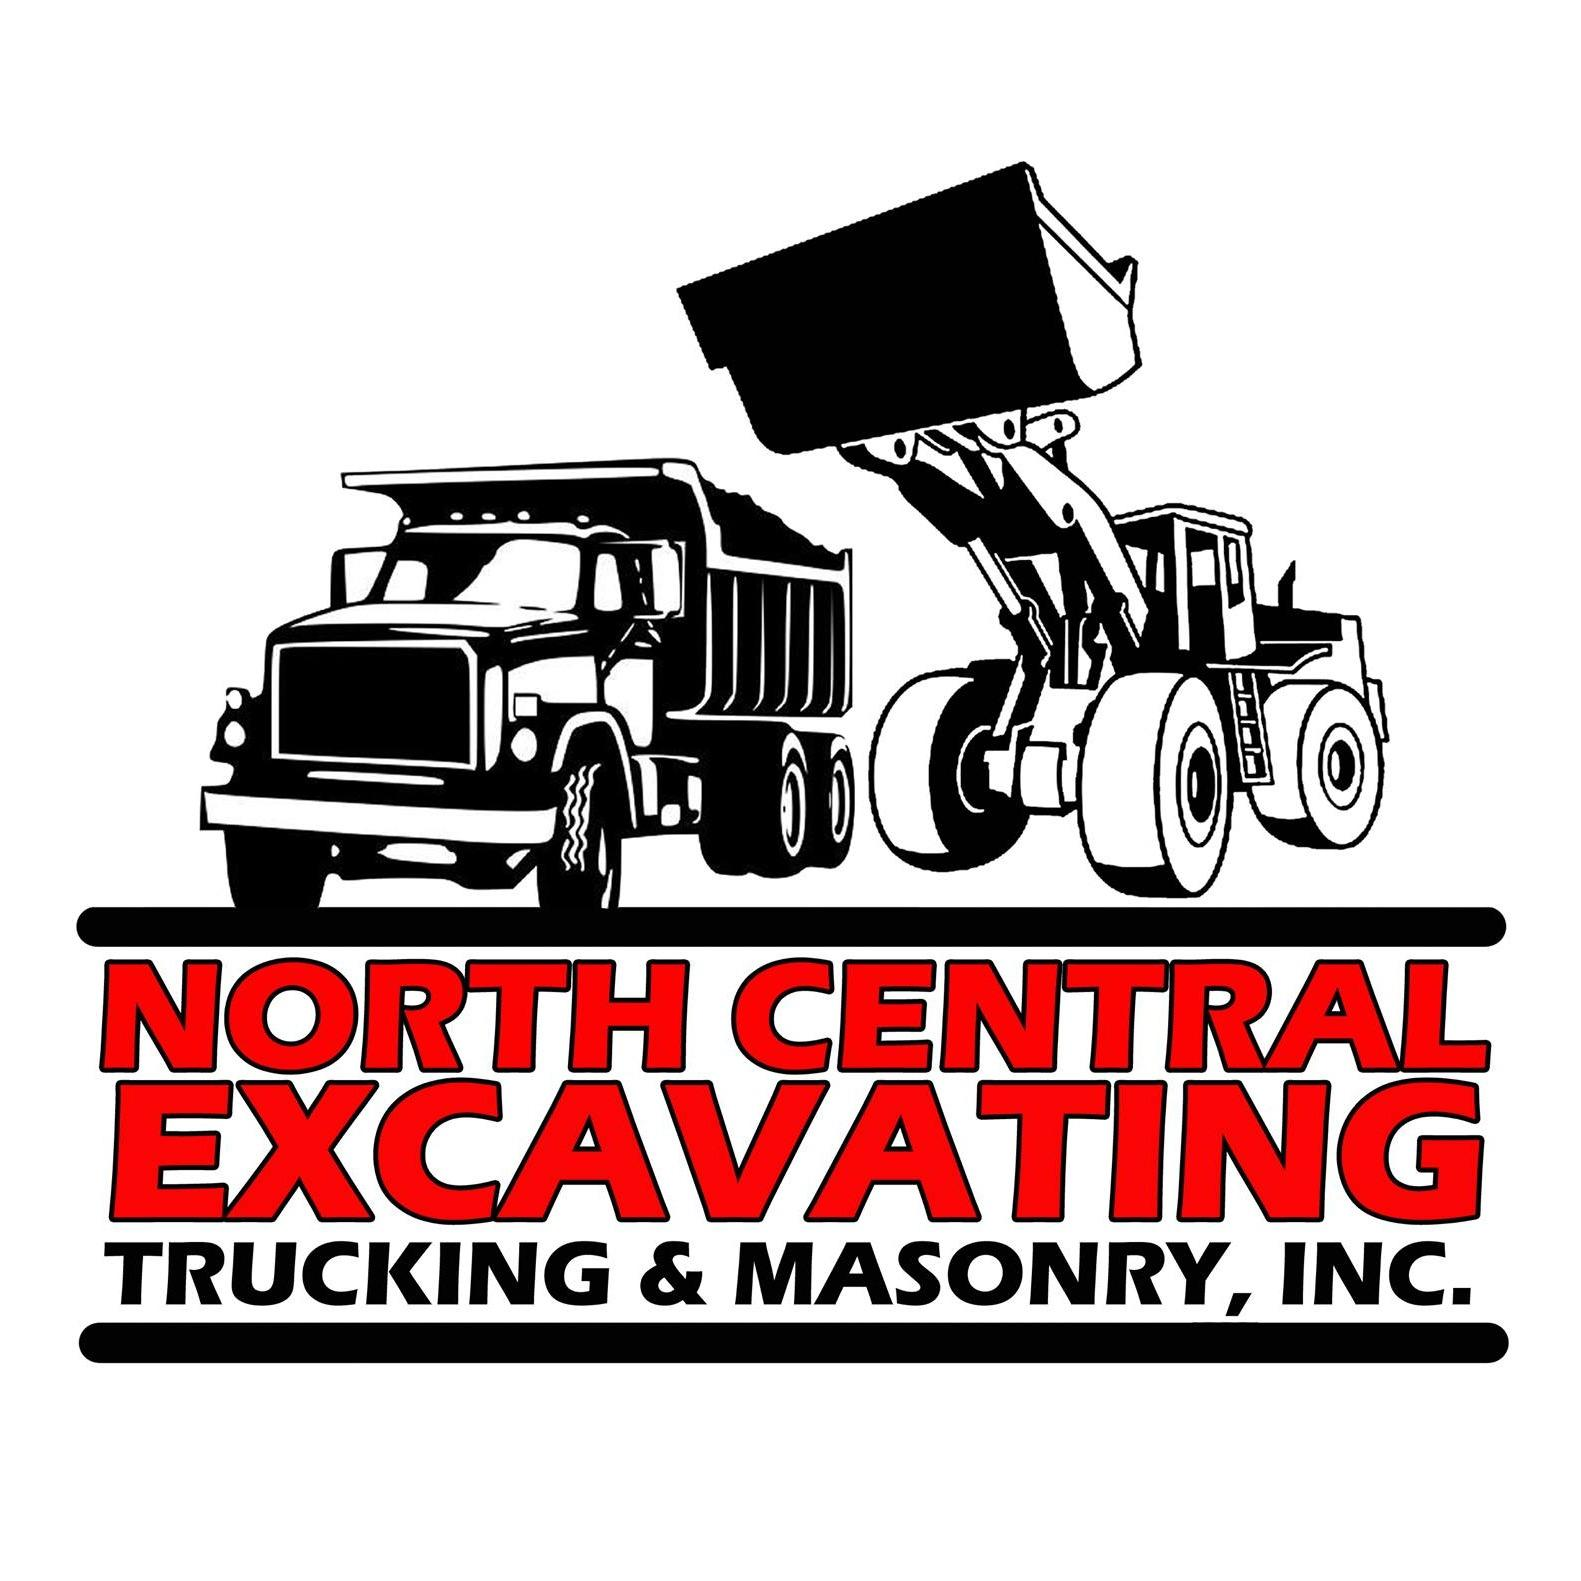 North Central Excavating, Trucking, & Masonry Inc. image 10